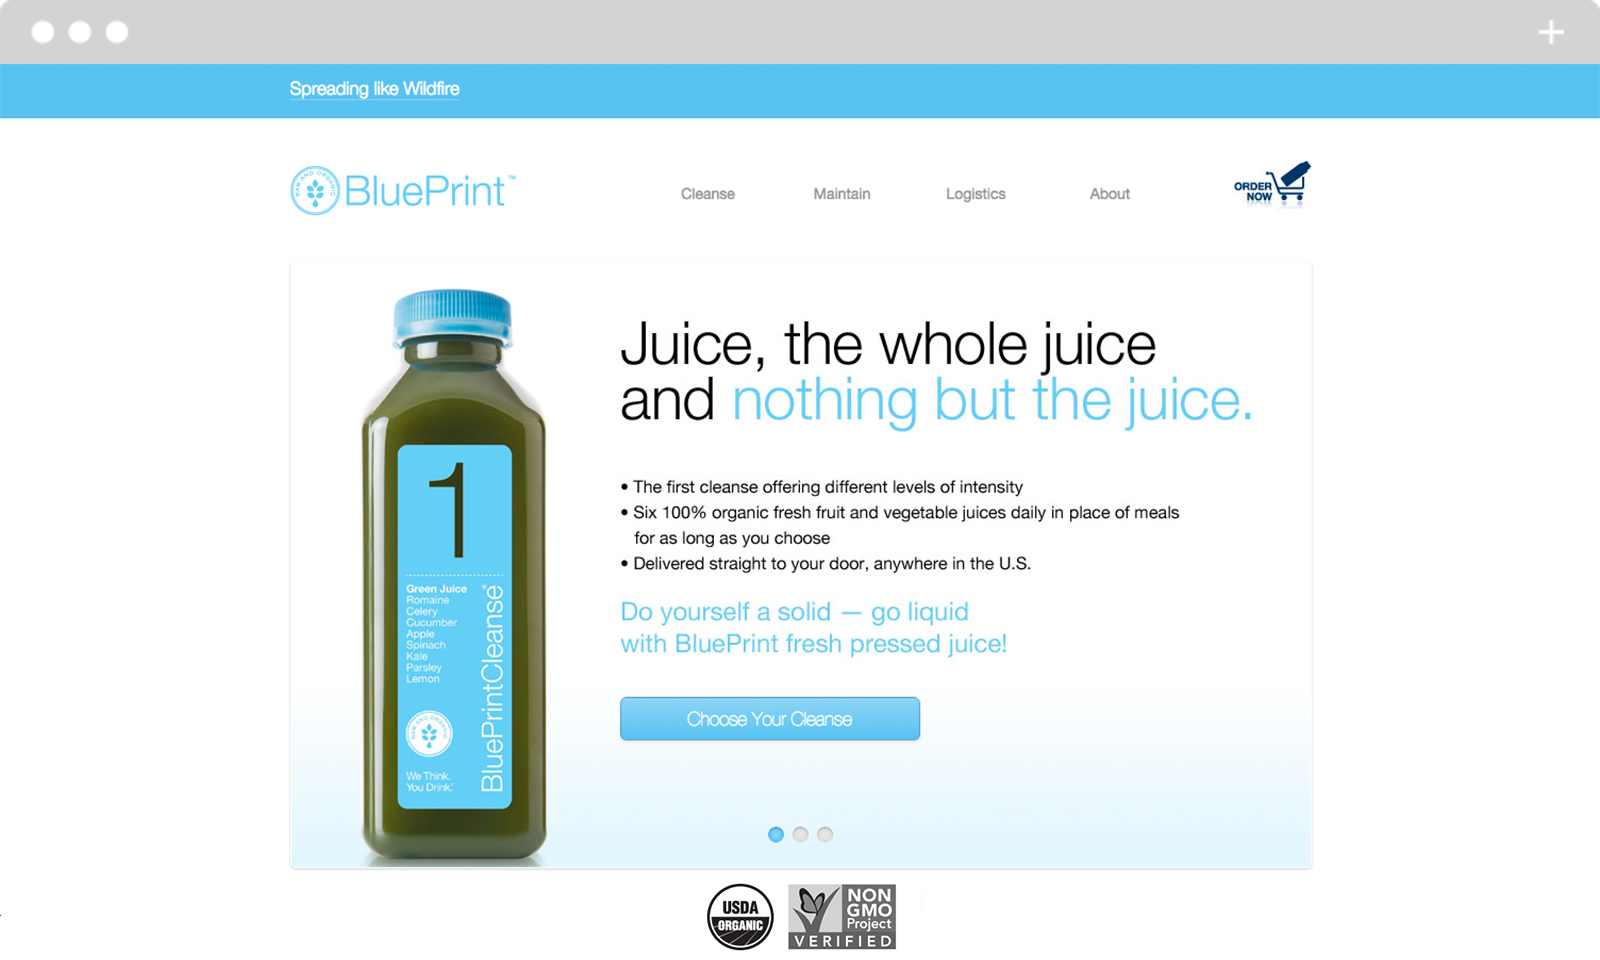 Blueprint kernlead blueprint cleanse is now ranked 1 for competitive search terms such as juice cleanse and 2 for cleanse and detox cleanse malvernweather Image collections